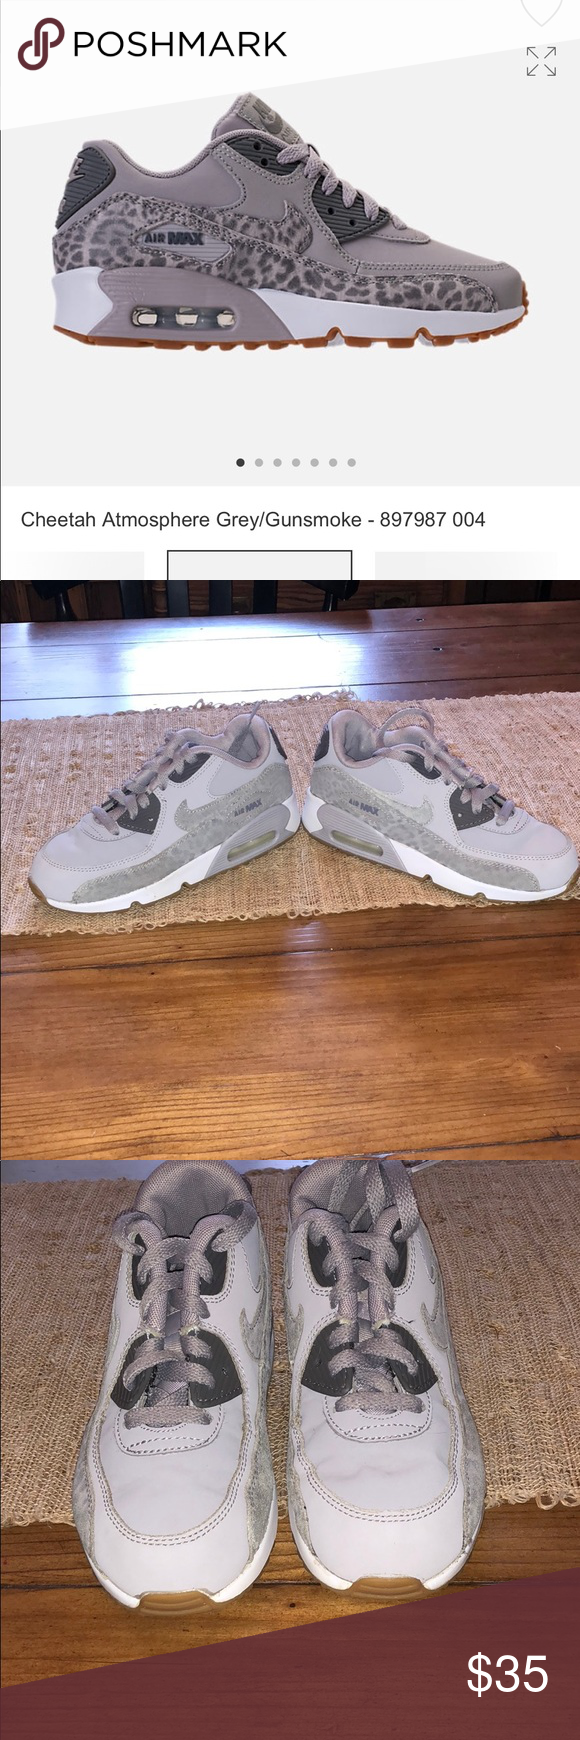 Girls Nike Air Max 90's size 2 She'll be ready for action in